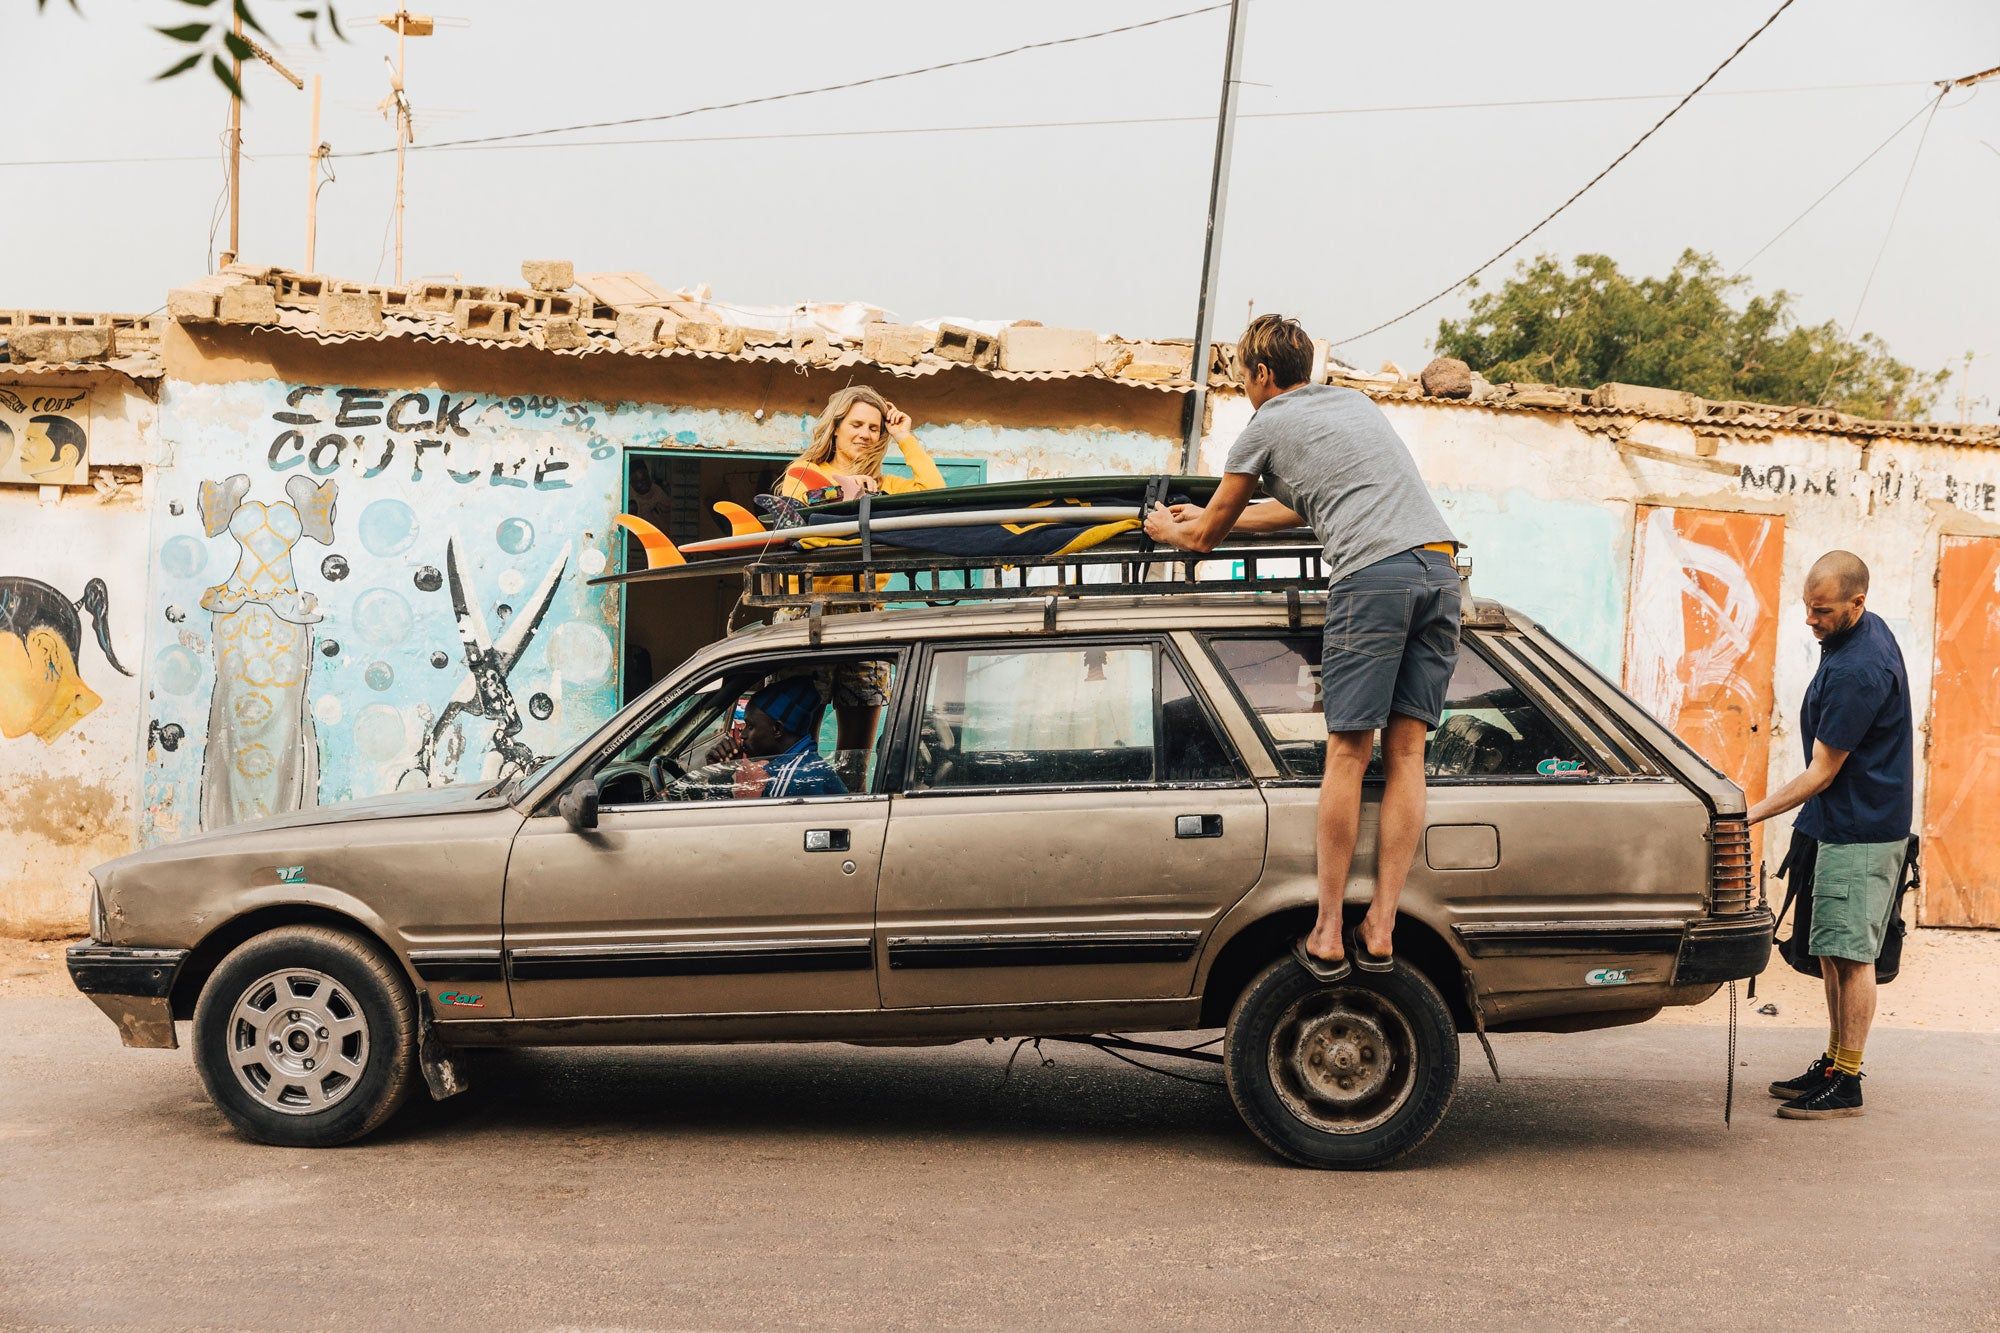 Sam-Bleakley-Noah-Lane-and-Amy-Brock-Morgan-packing-up-the-Finisterre-Surf-mobile-on-our-2019-Senegal-trip